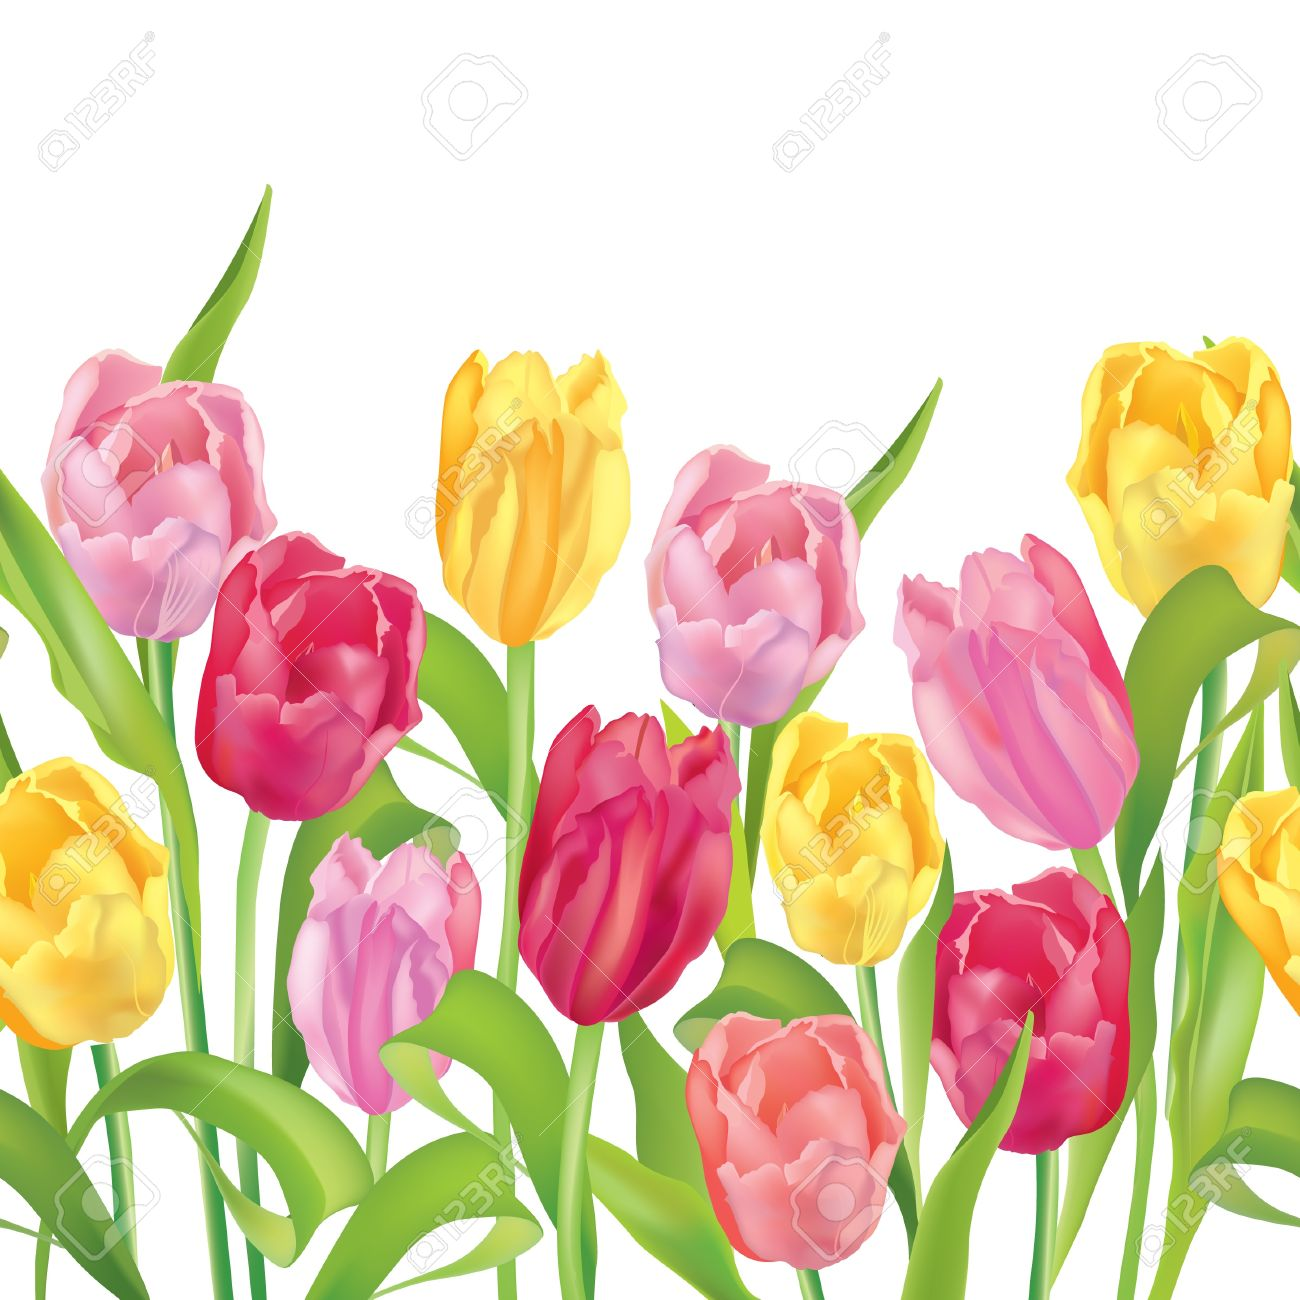 Flower border seamless  Tulips flower garland on white background  Flower bouquet  Tulips bouquet isolated Stock Vector - 18050492